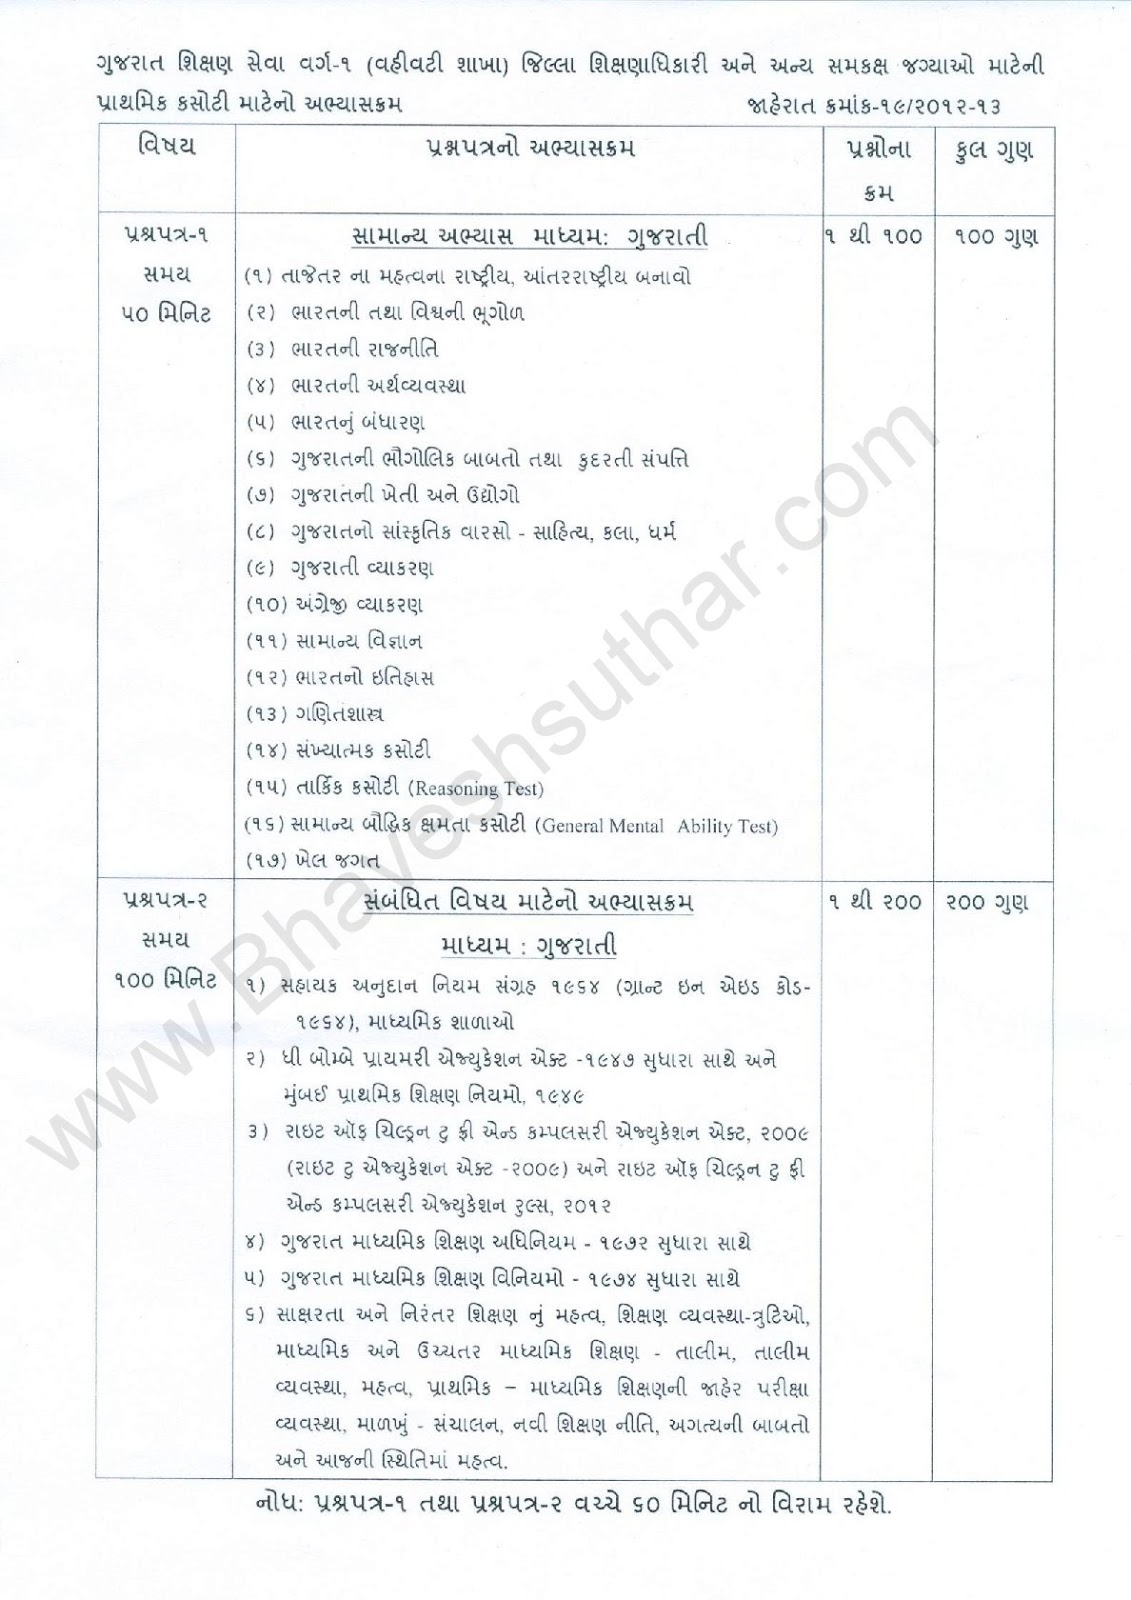 District Education Officer and its equivalent posts Exam Syllabus